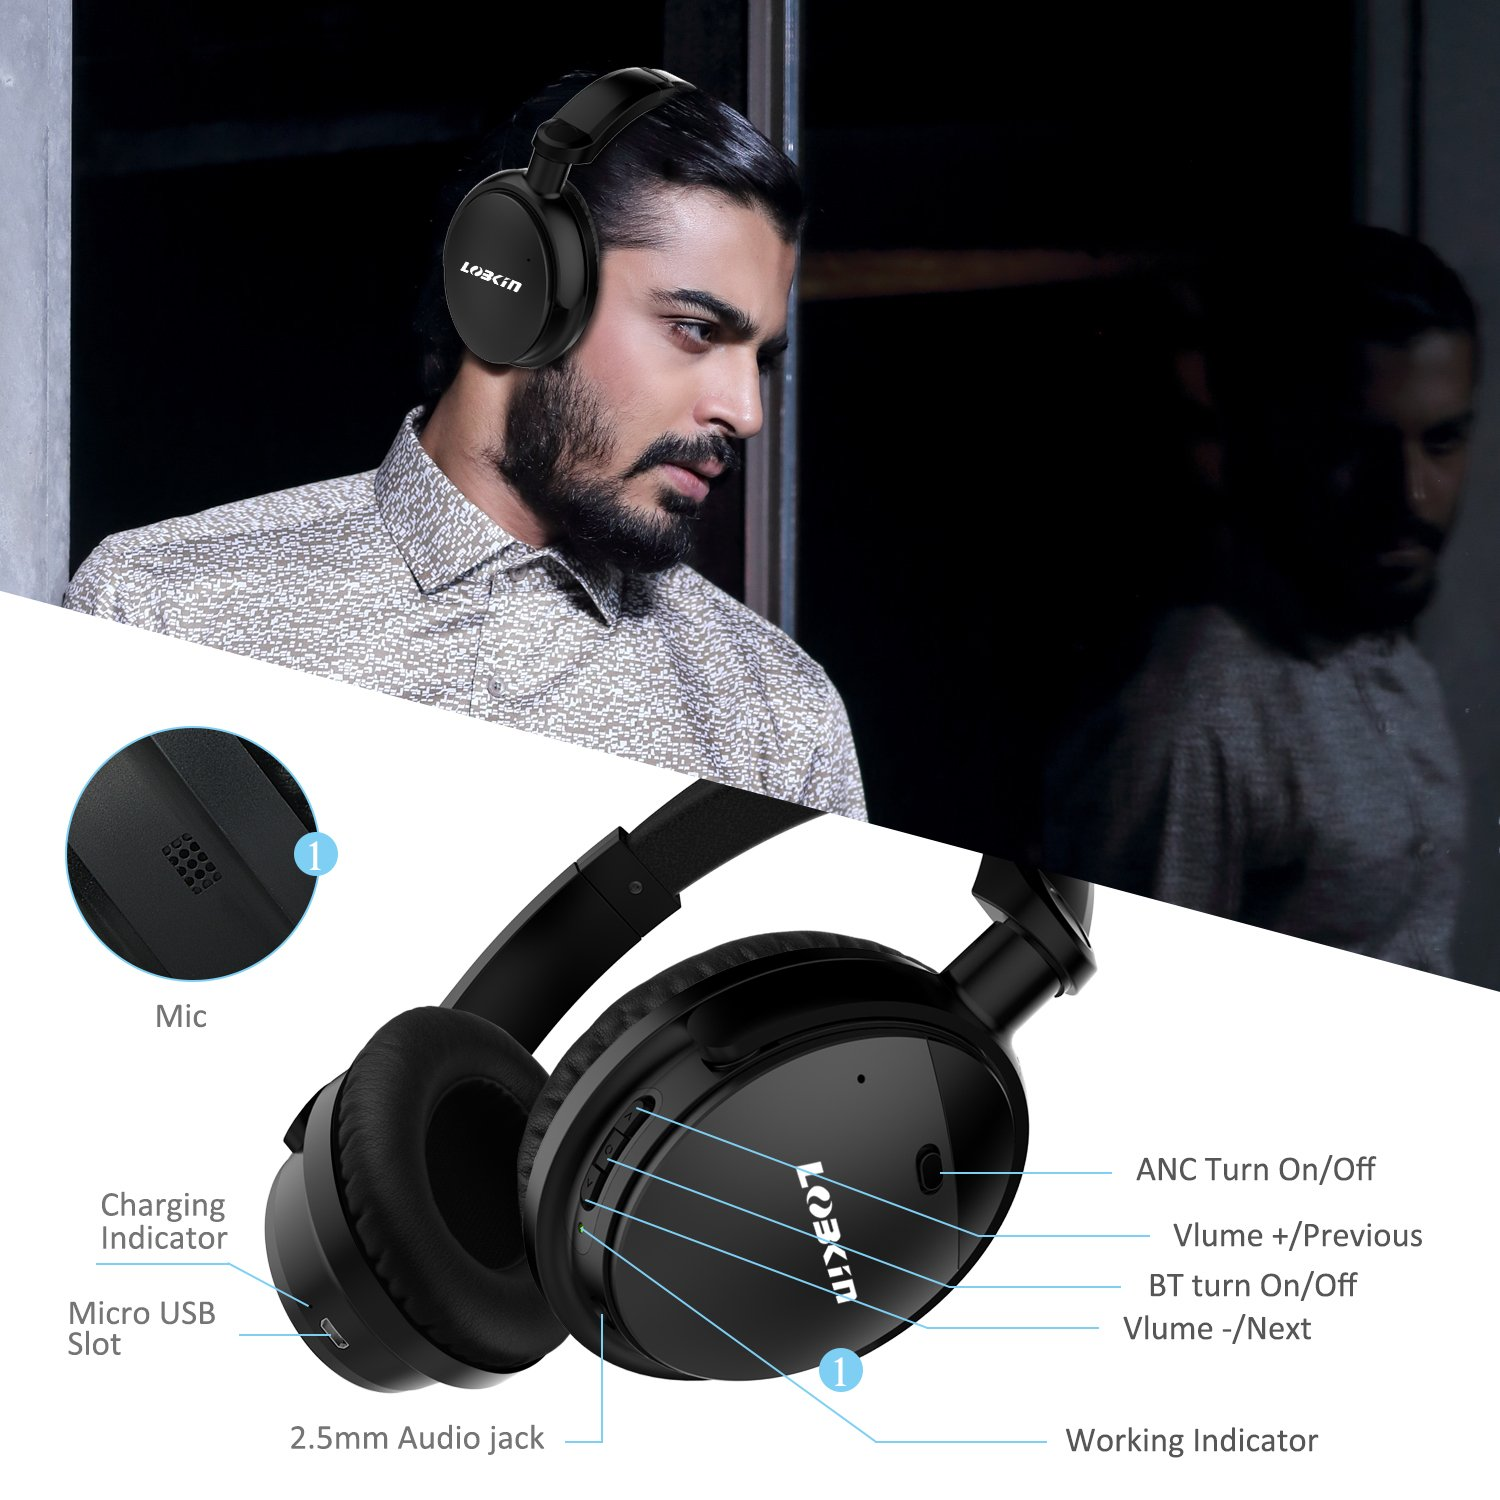 Active Noise Cancelling Headphones,Lobkin Wireless Headphones with Microphone Over Ear Headphones with aptX HiFi Stereo Sound - Black